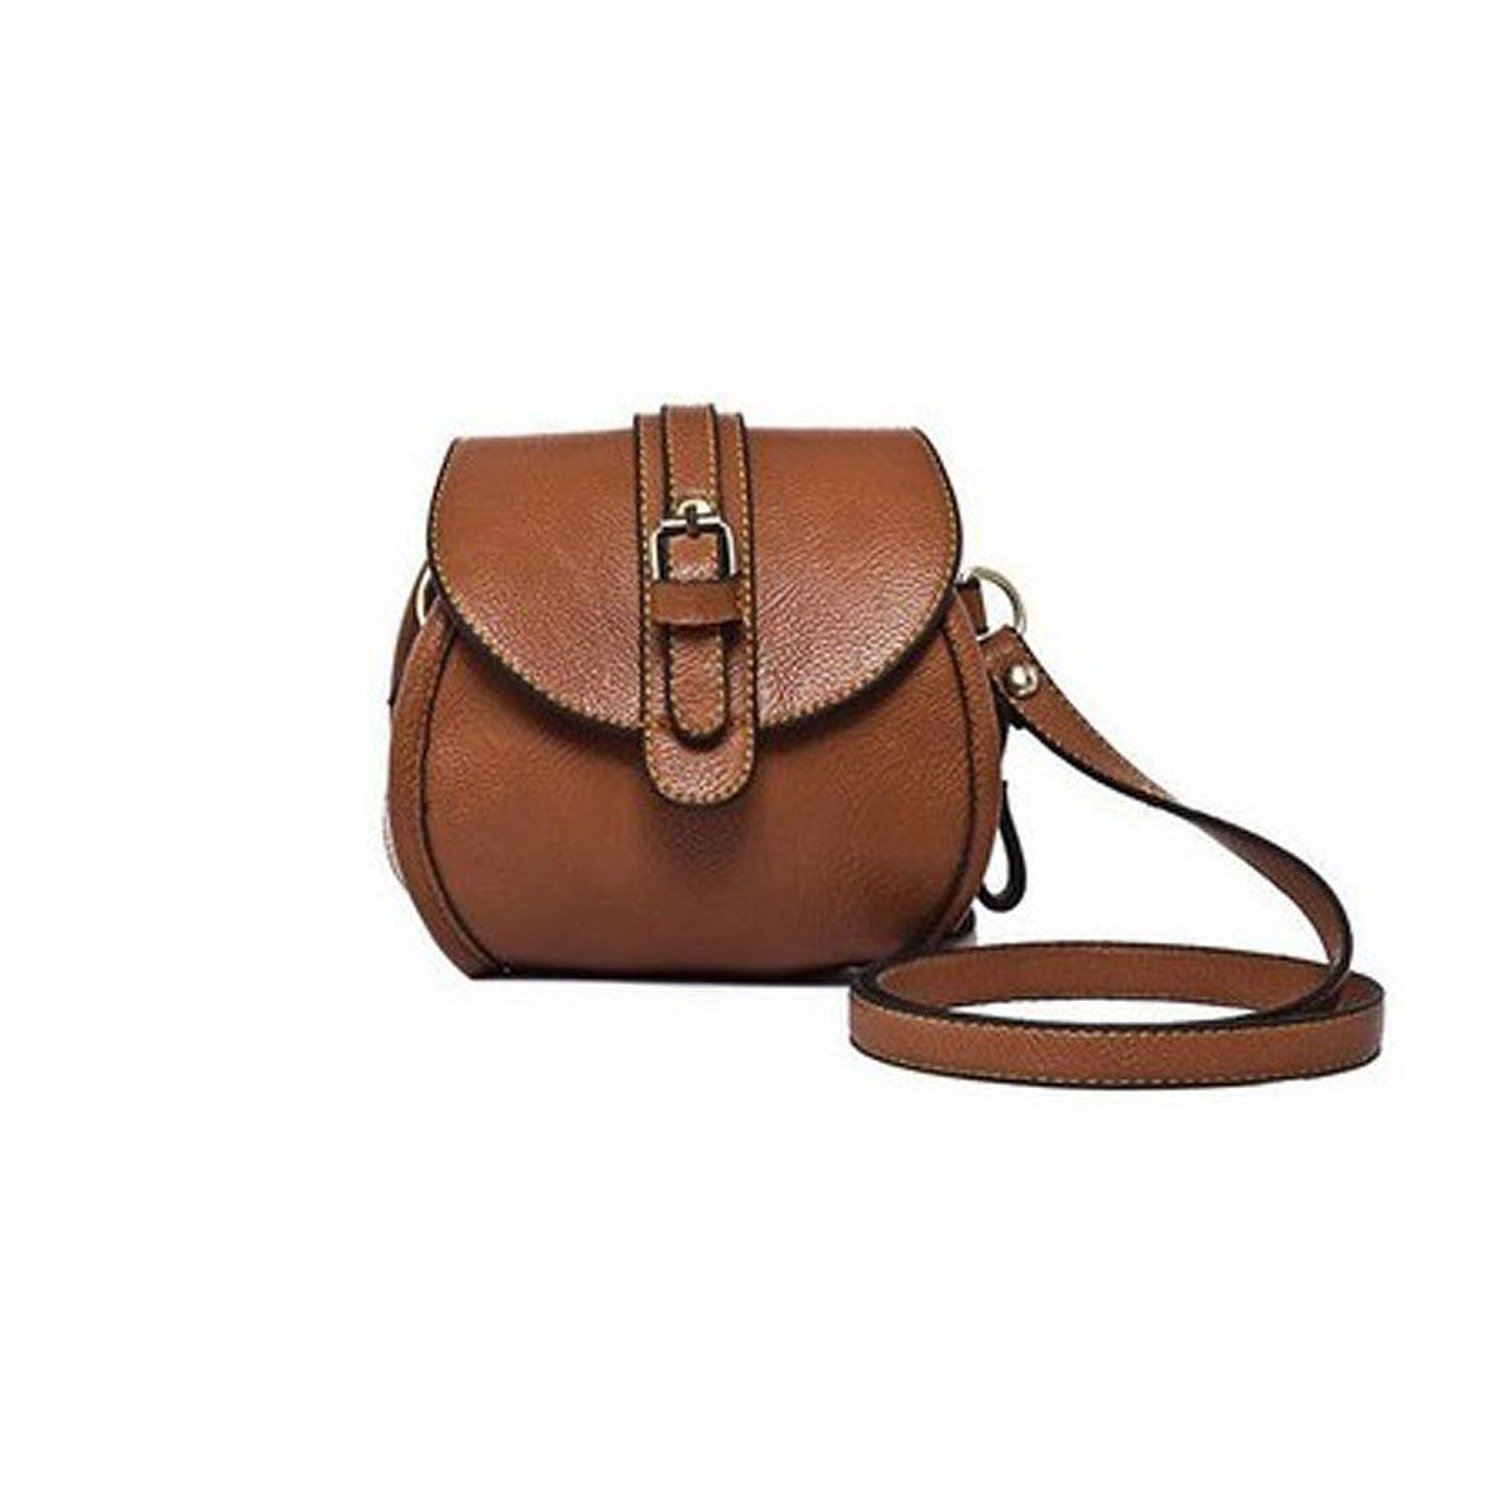 Donalworld Women Korean Style Vintage Mini Leather Shoulder Handbag Brown: Handbags: Amazon.com